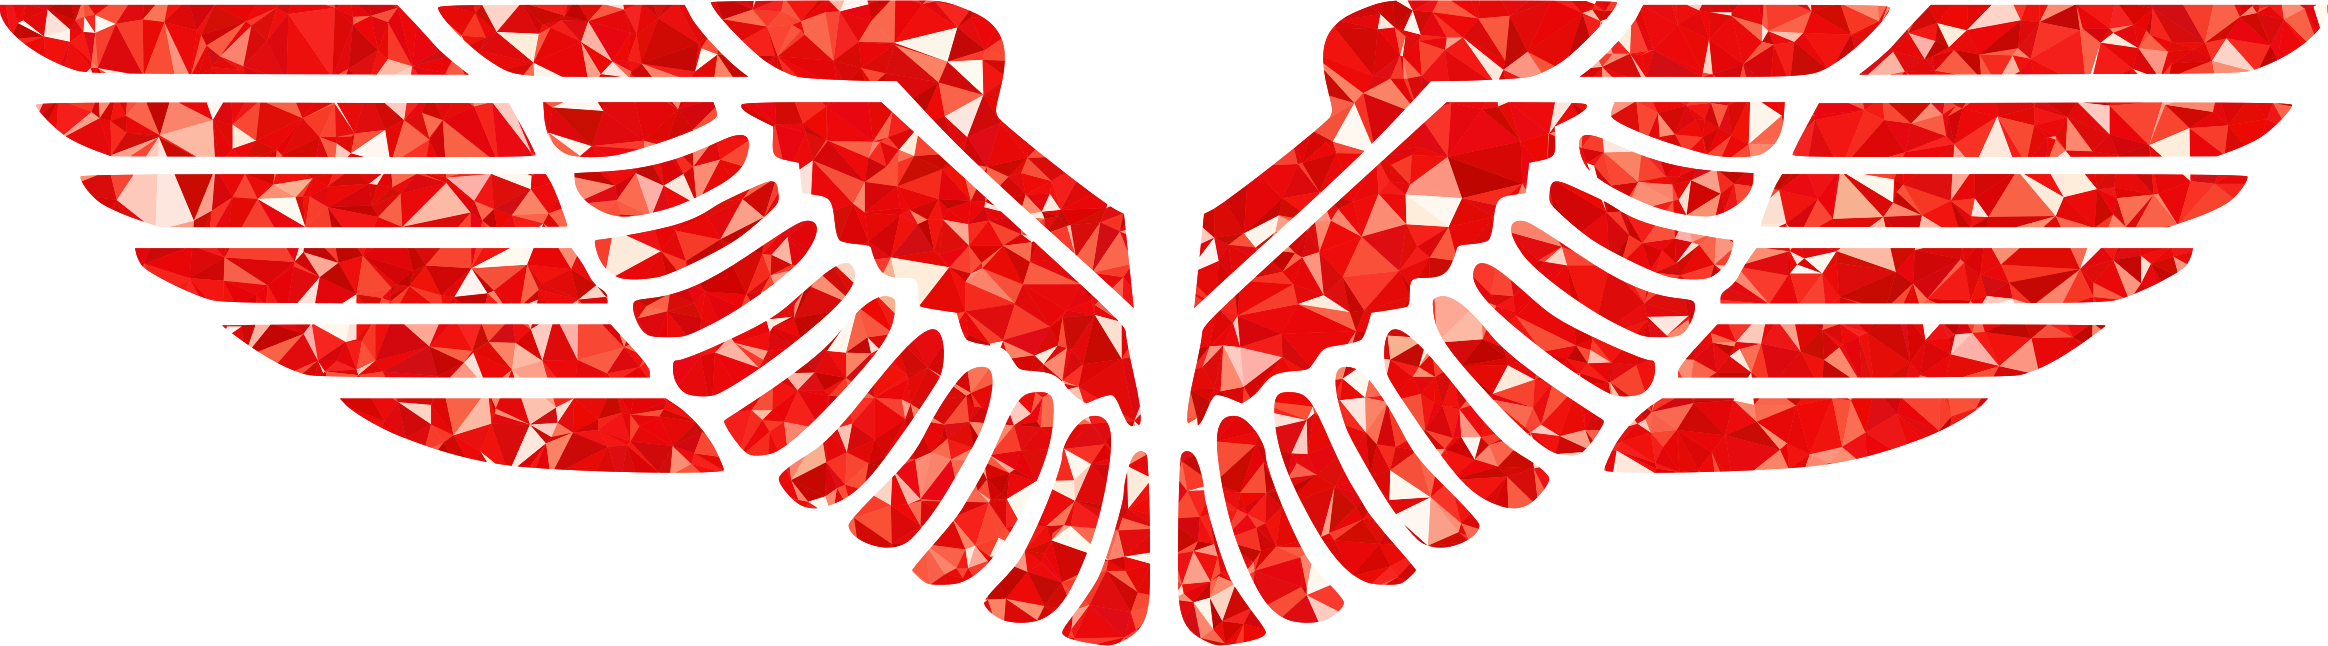 Eagle wings png. Ruby icons free and